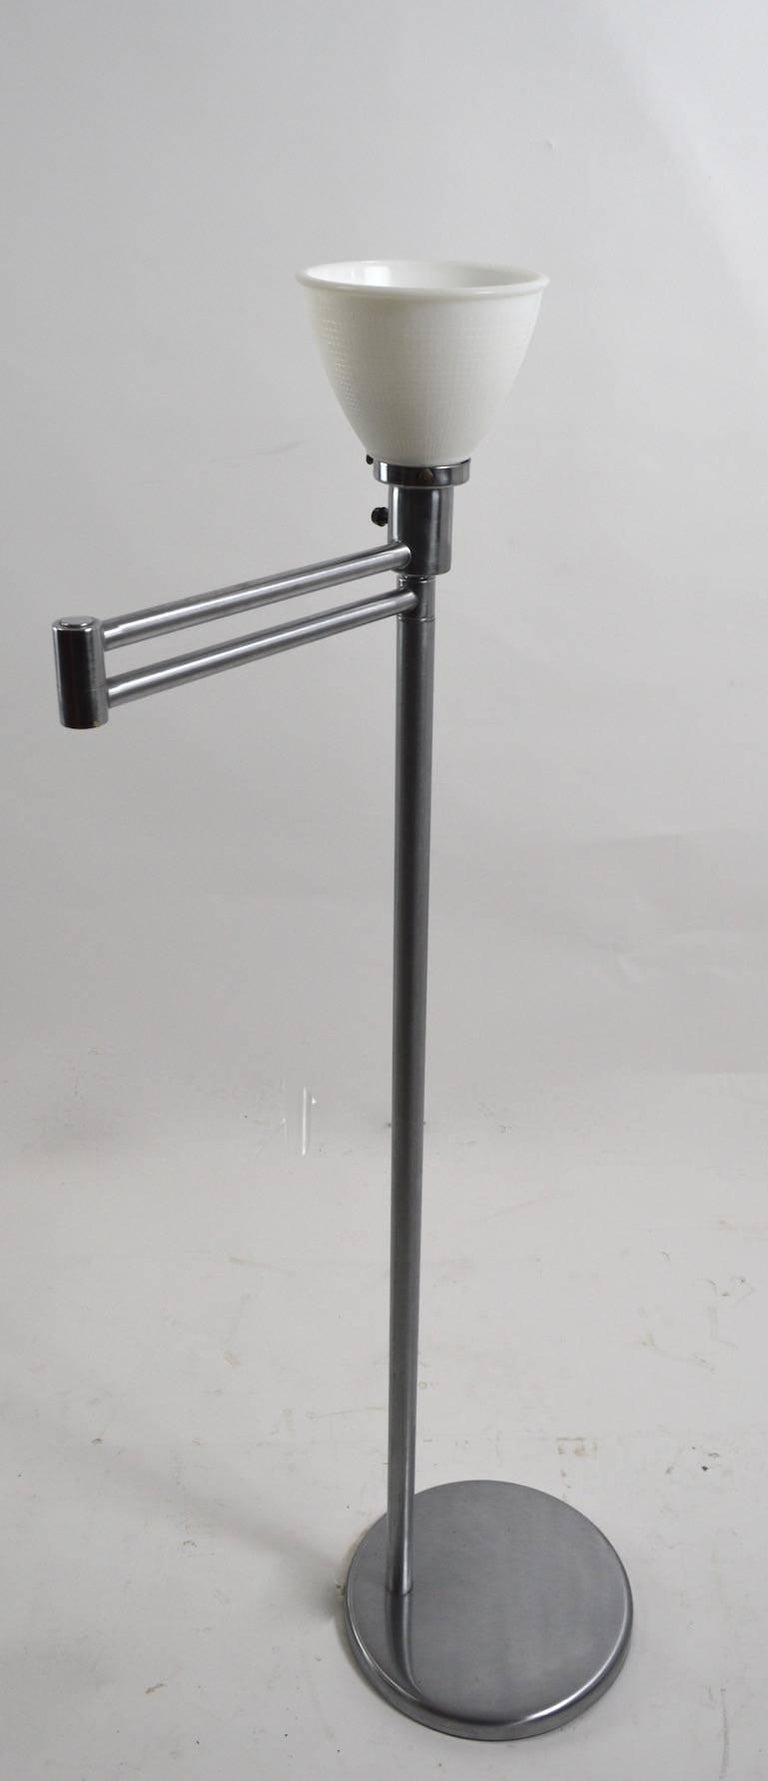 Classic flex arm floor lamp by Walter Von Nessen in clean, original, working condition. Iconic design, exceptional quality construction. Slight dents to base. Each segment of the swing arm is 12 inches (total extended length 24 inches). This